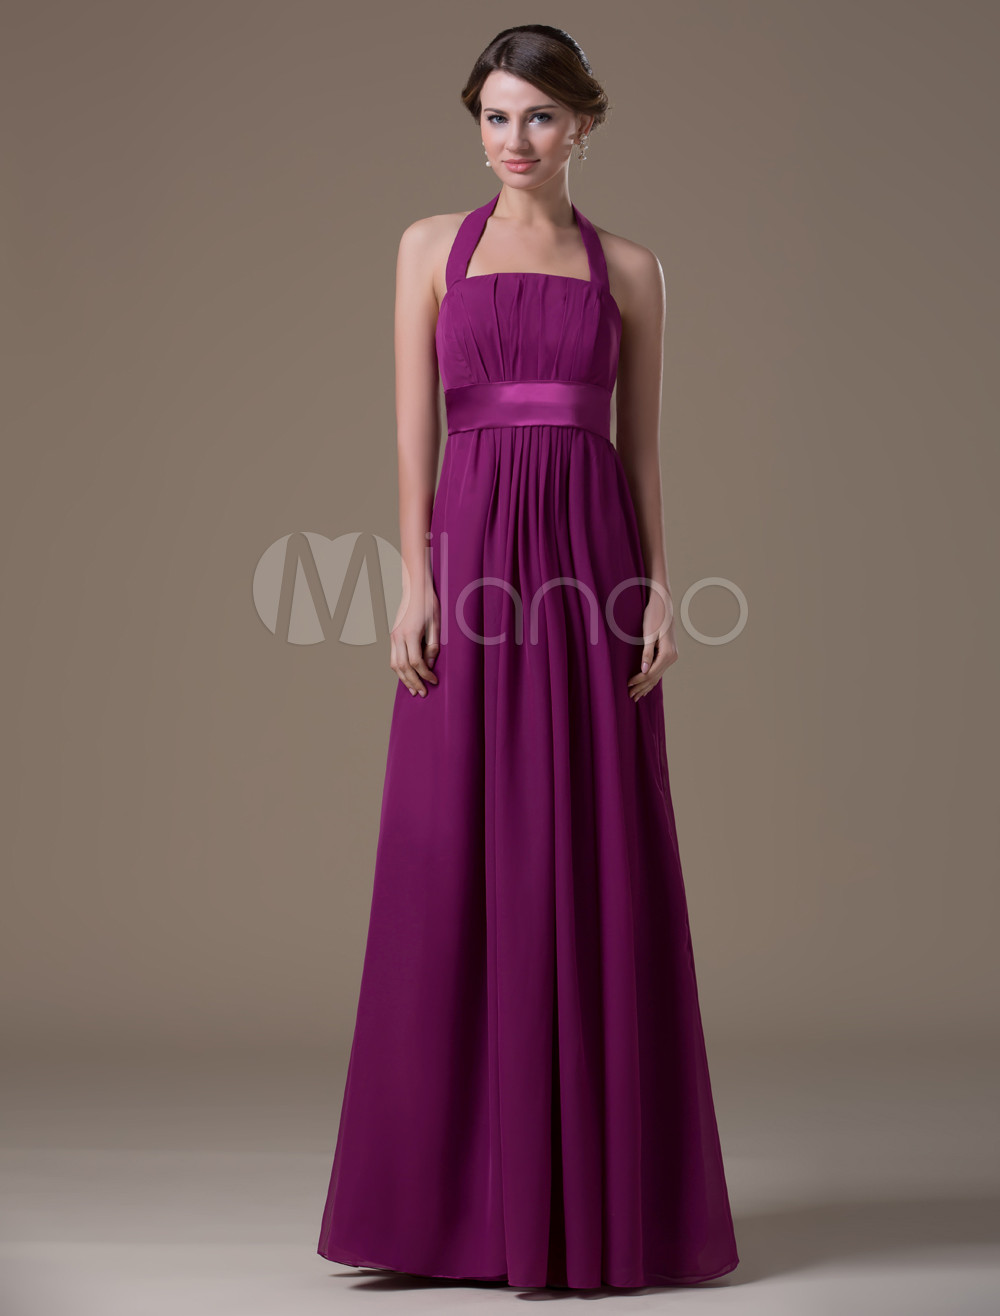 Maternity Bridesmaid Dress Magenta Halter Chiffon A line Floor Length Prom Dress